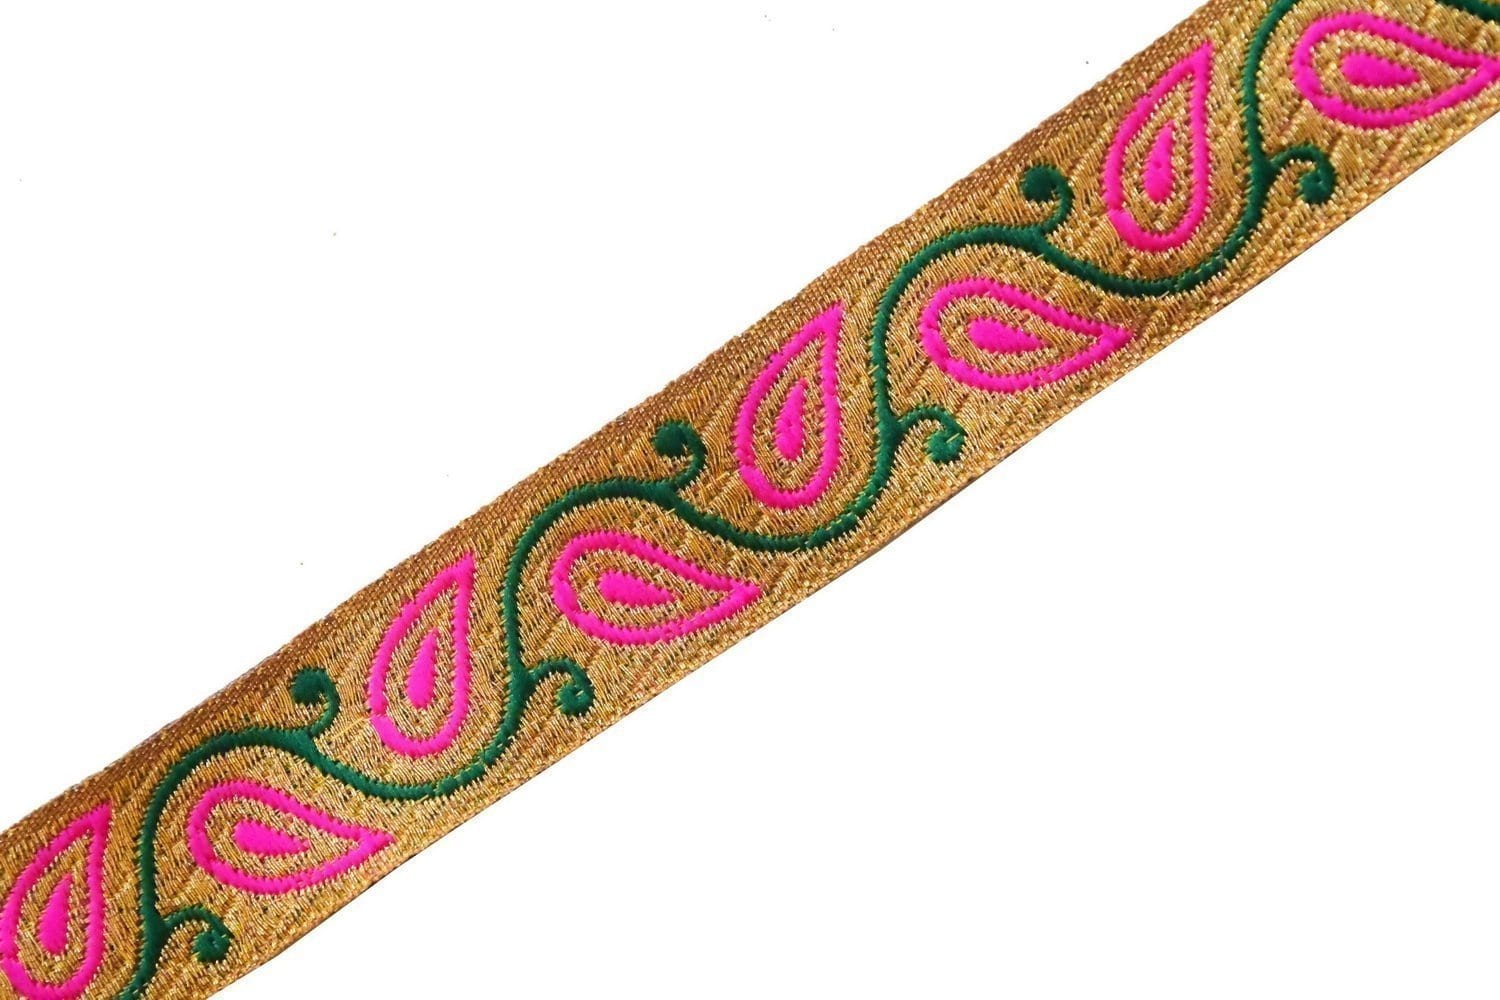 22 mm Wide Golden Embroidered Lace 9 meters Long Piece LC195 1